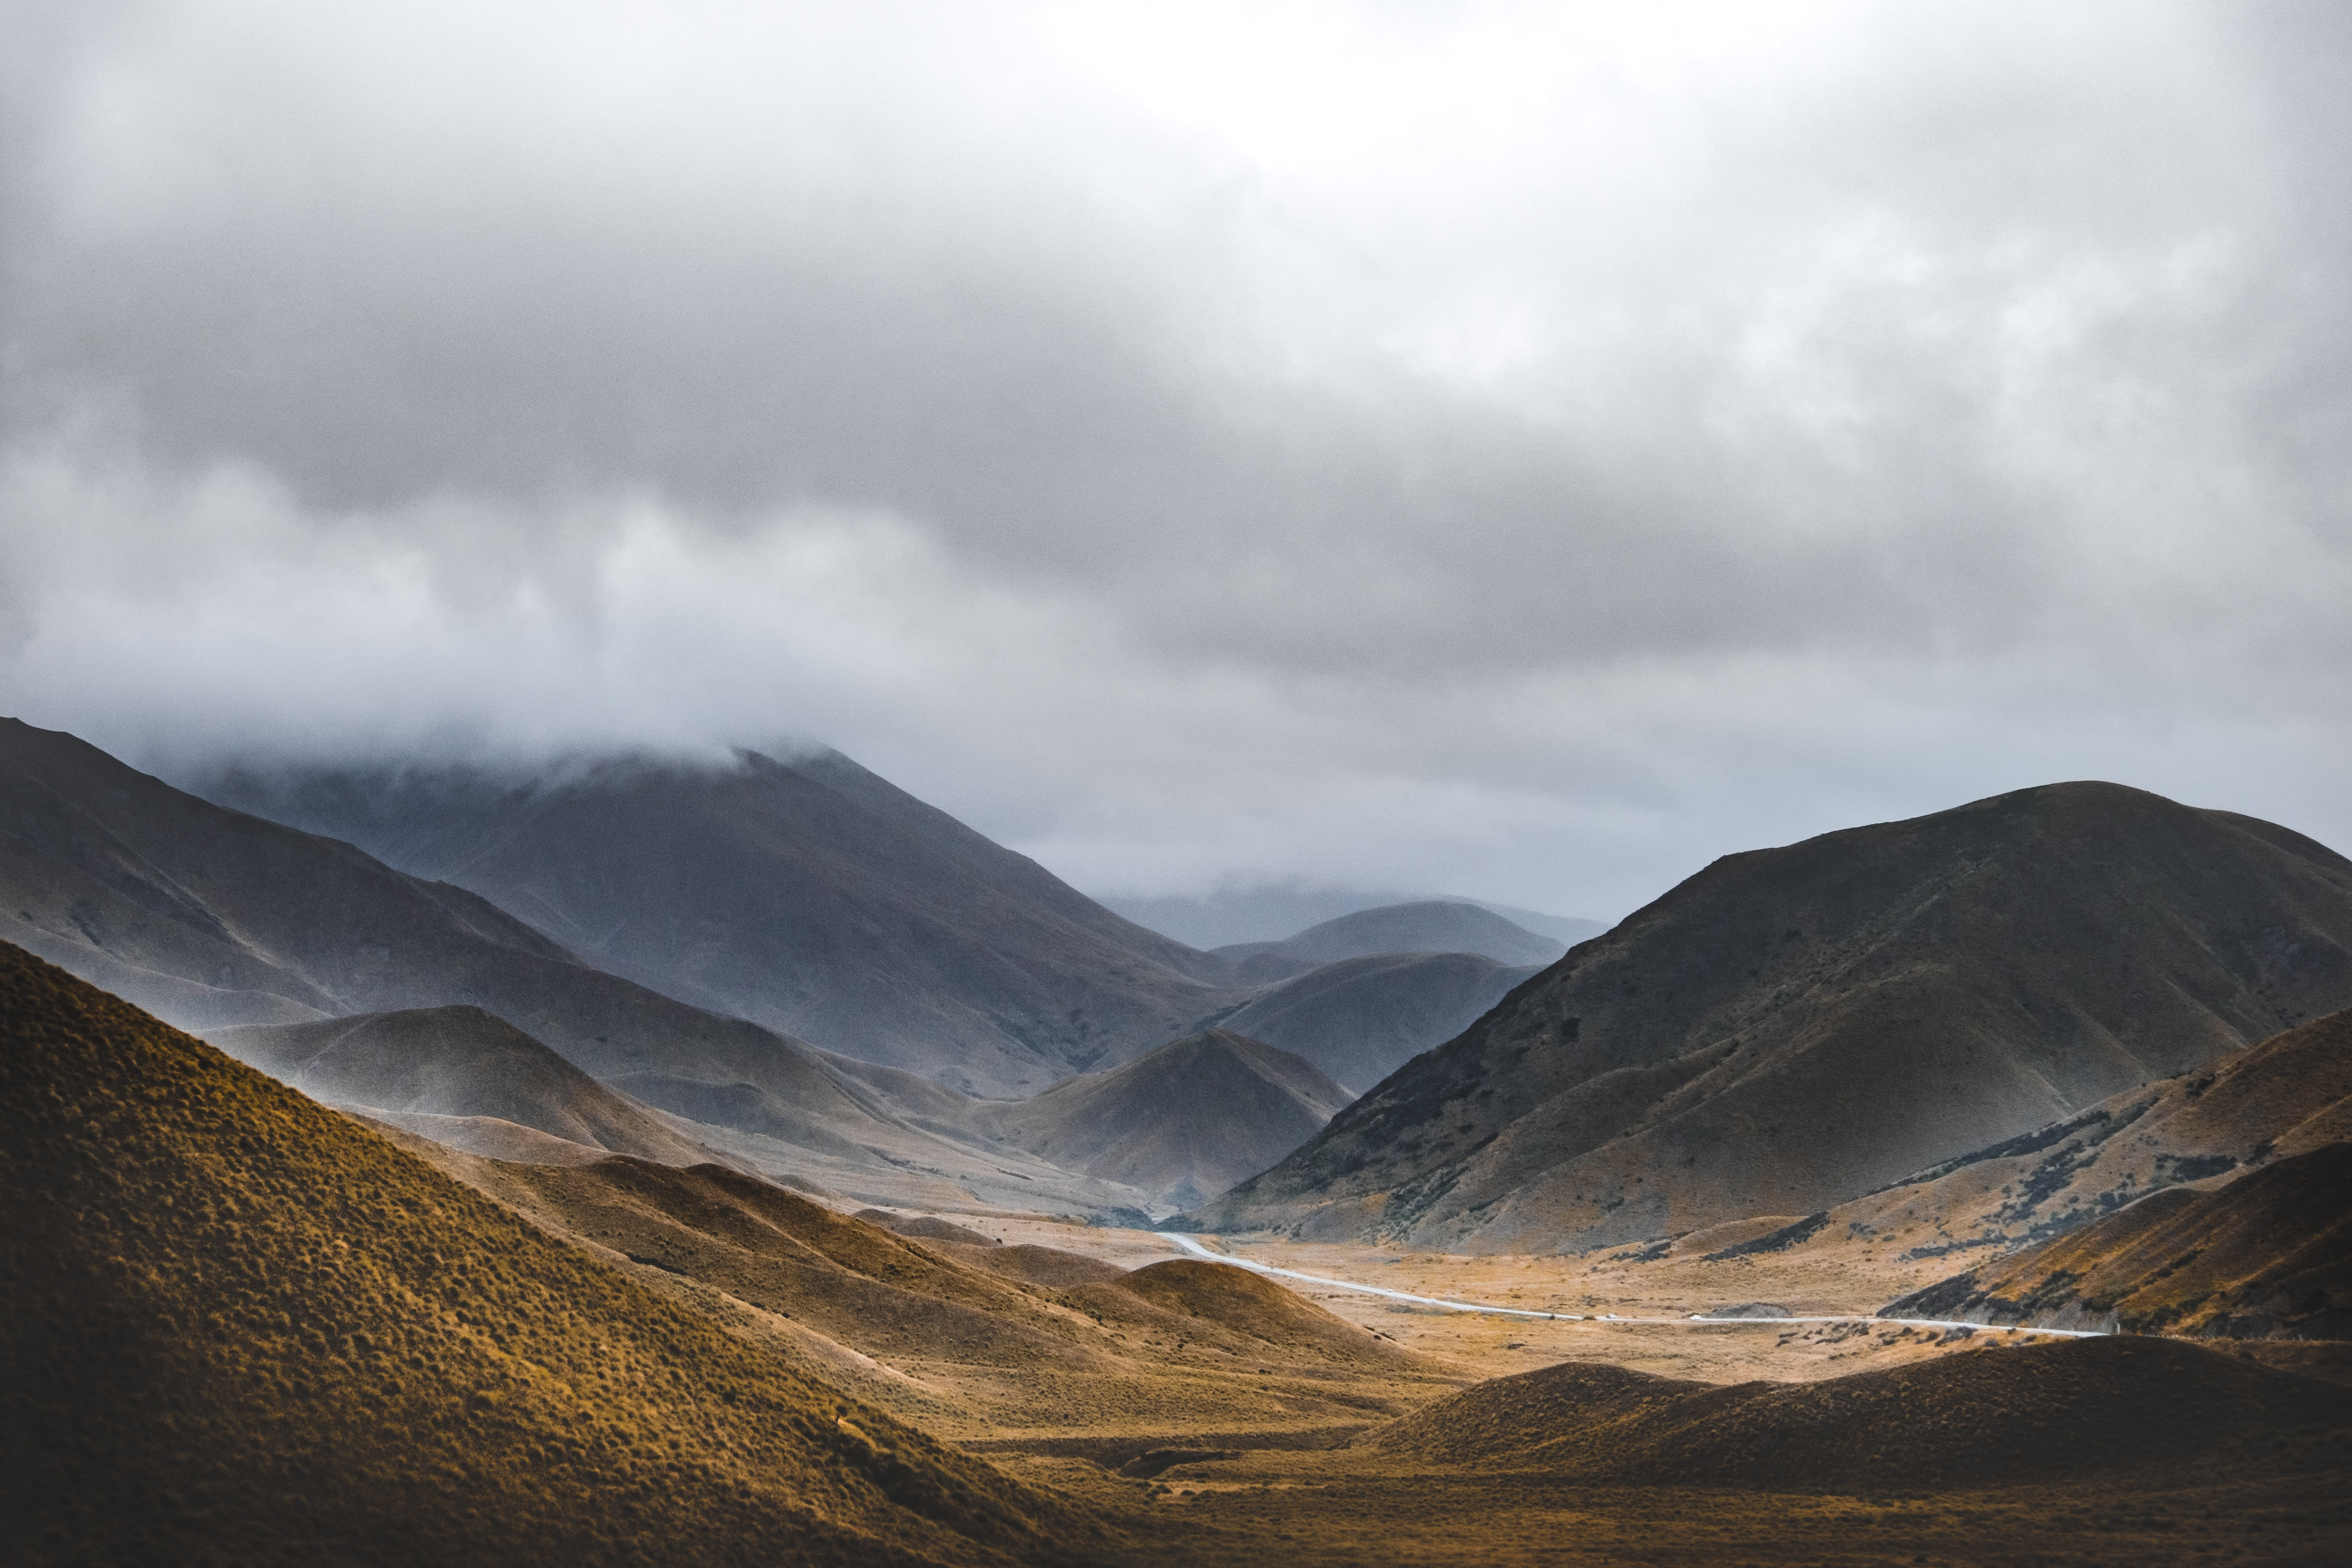 brown mountains under gray sky